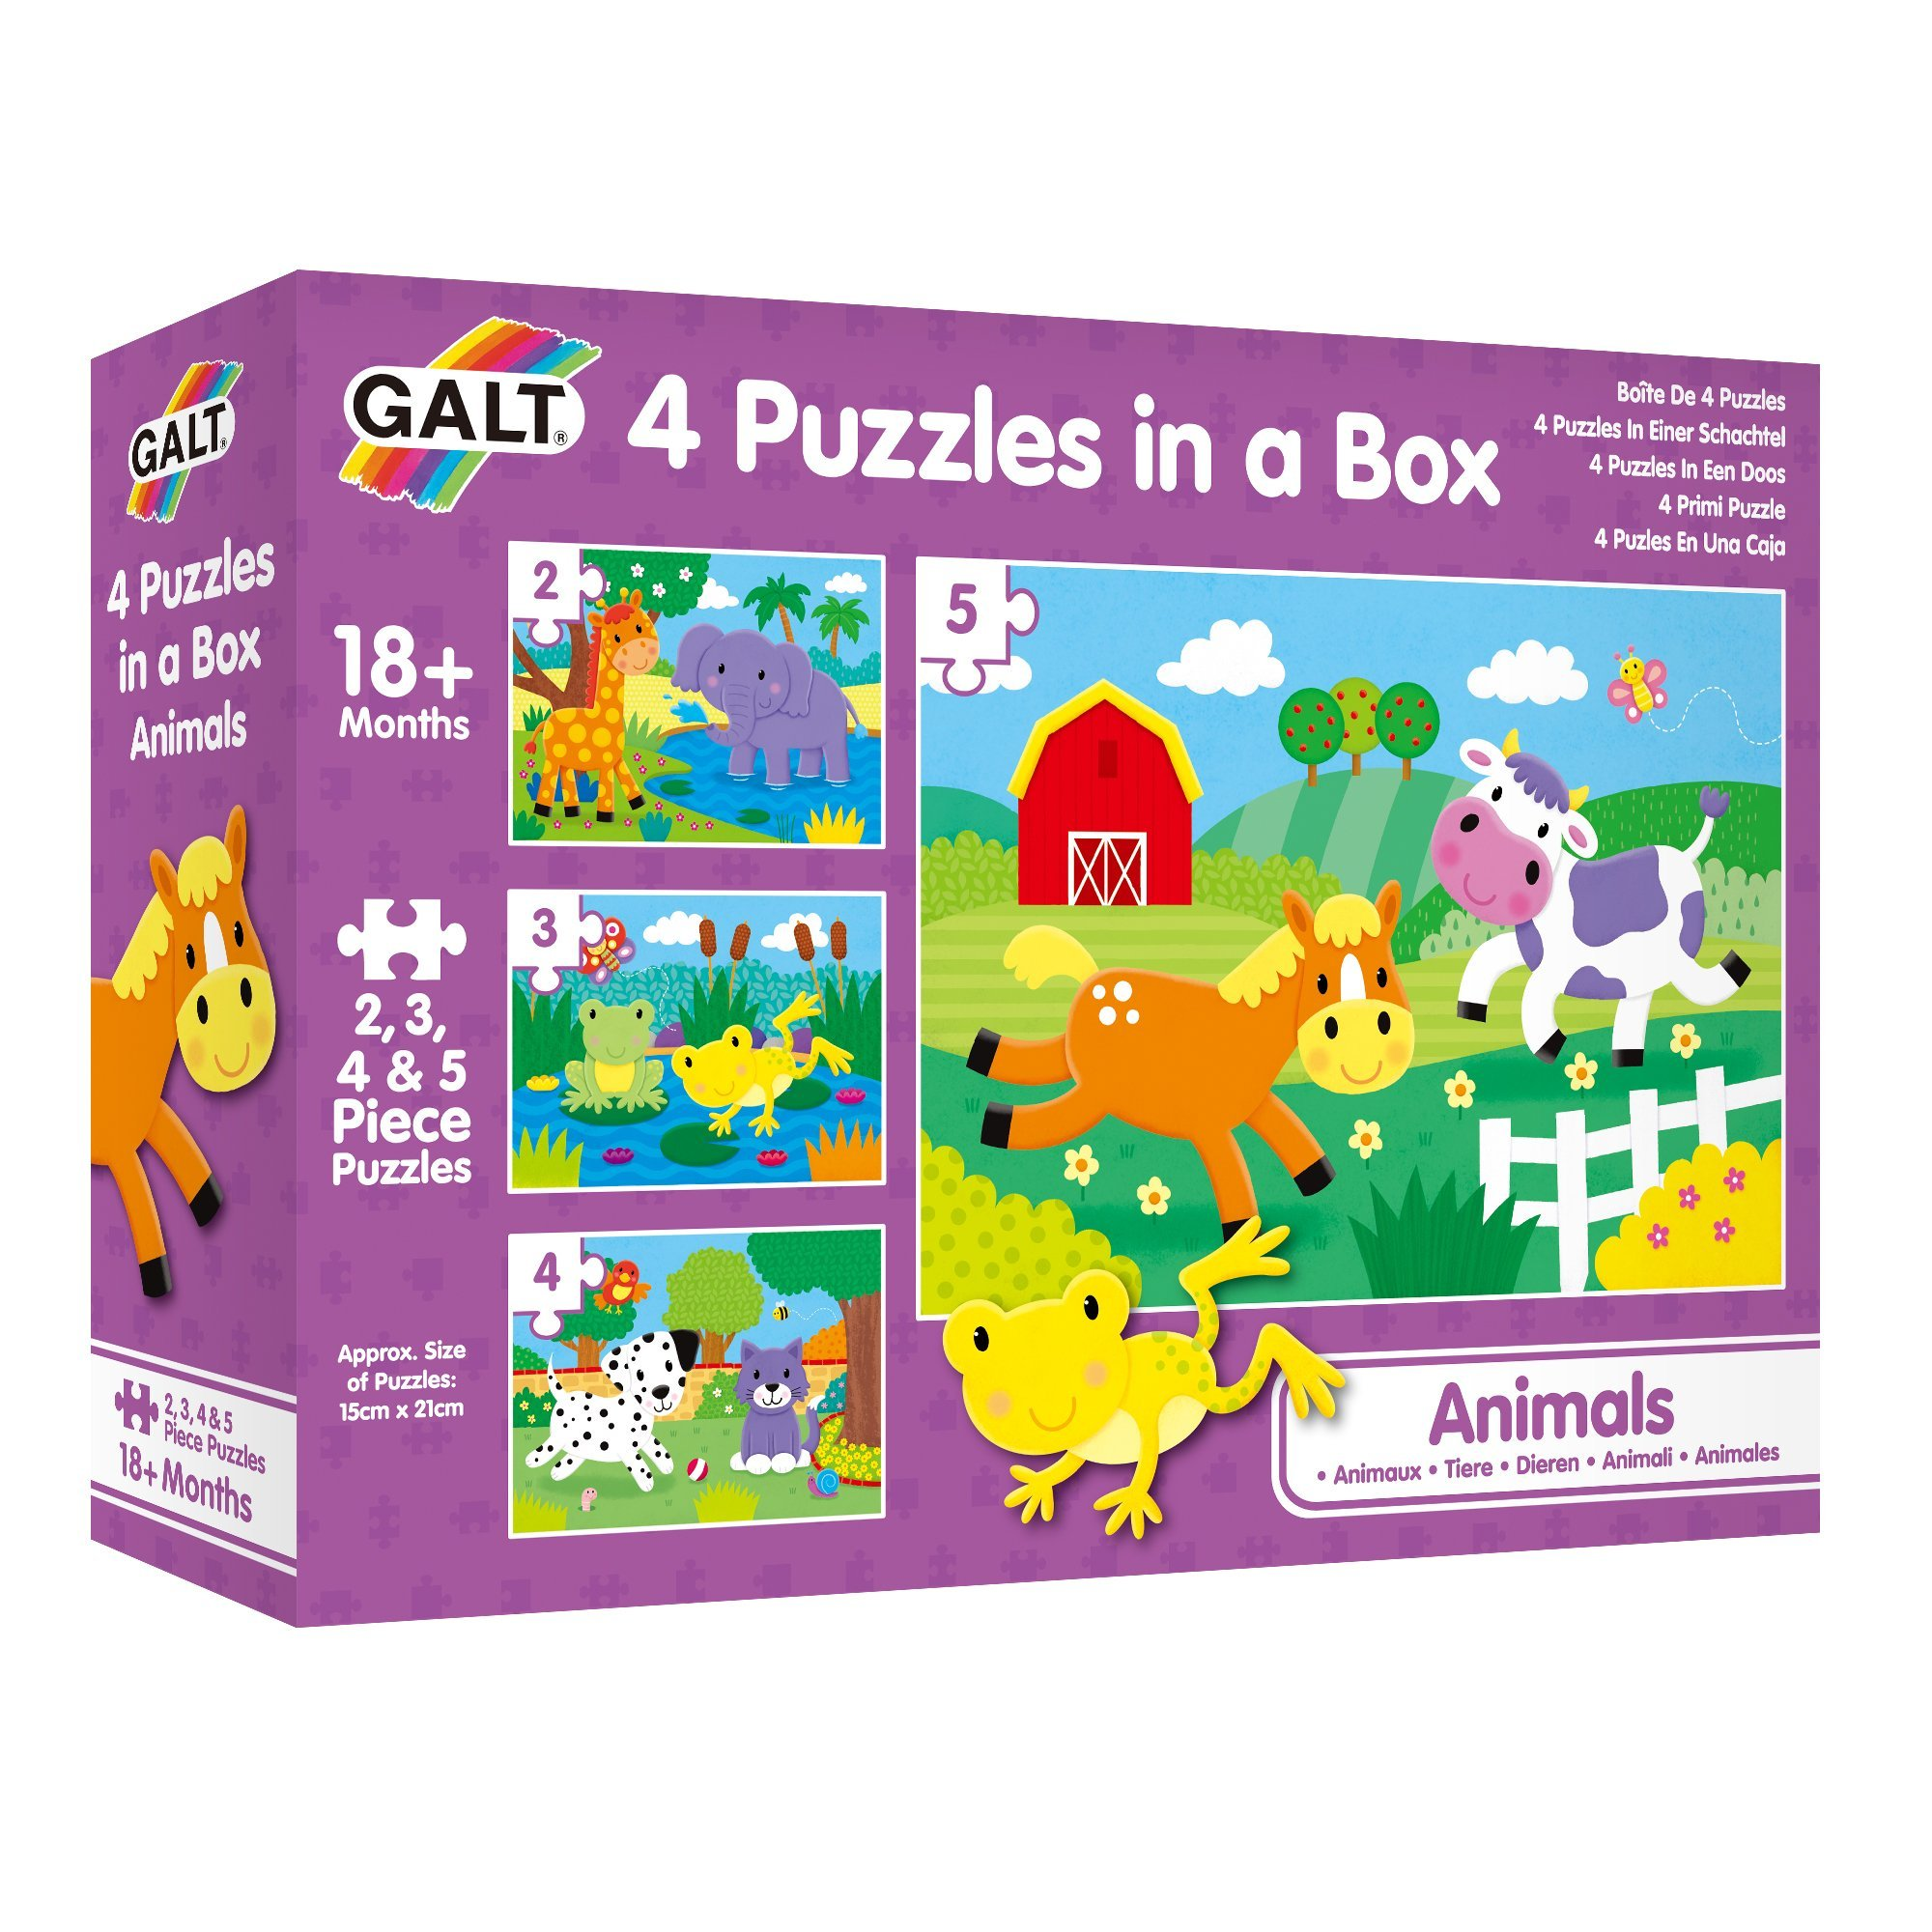 Galt 4 Puzzles in a Box - Animals Puzzle 18mths+ 1 x 2 pc, 1x 3 pc, 1 x 4pc,1 x 5 pc